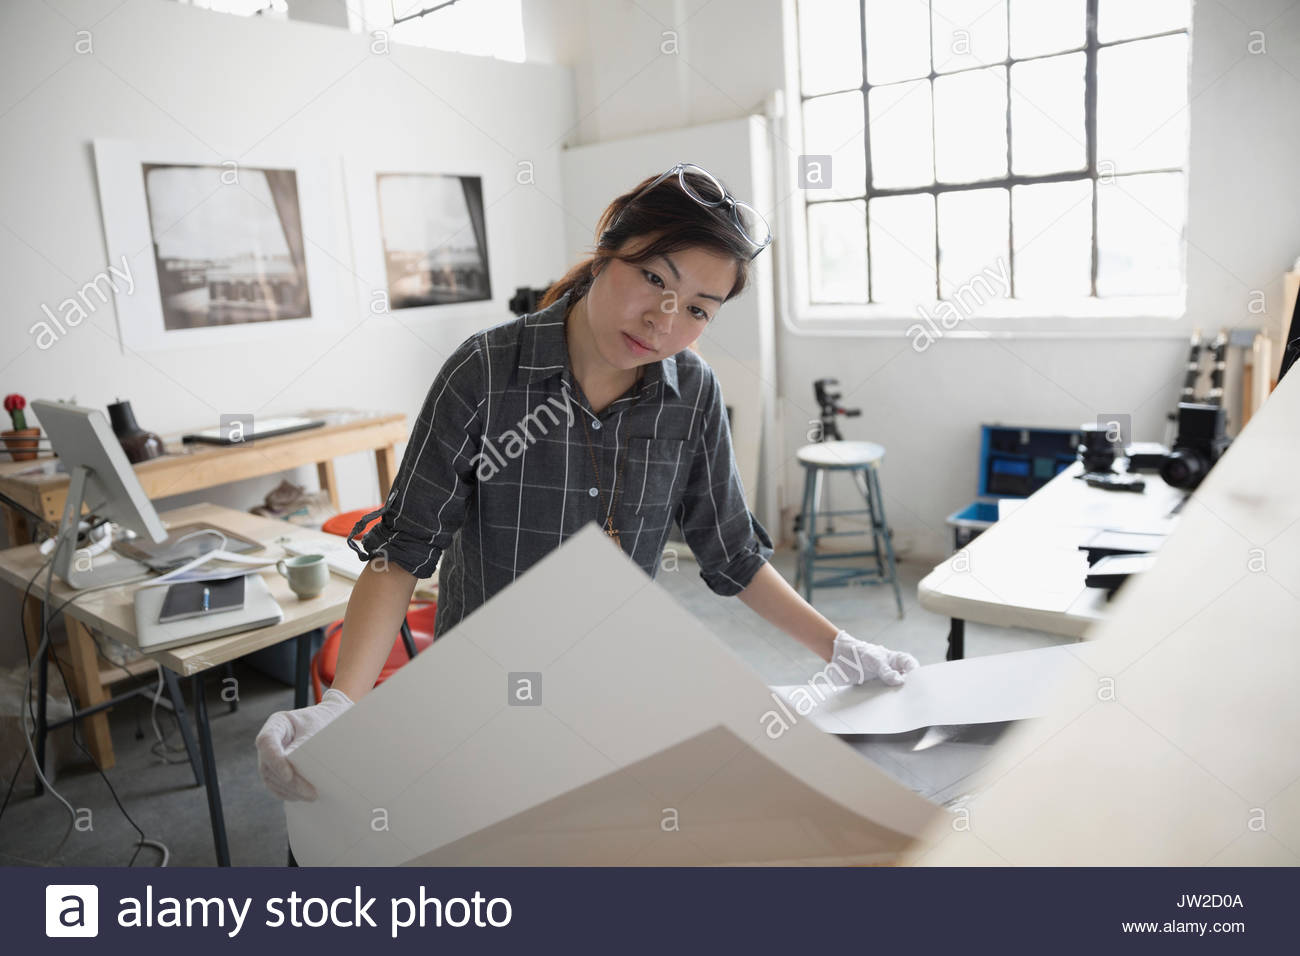 Focused female photographer reviewing large photography print in art studio - Stock Image